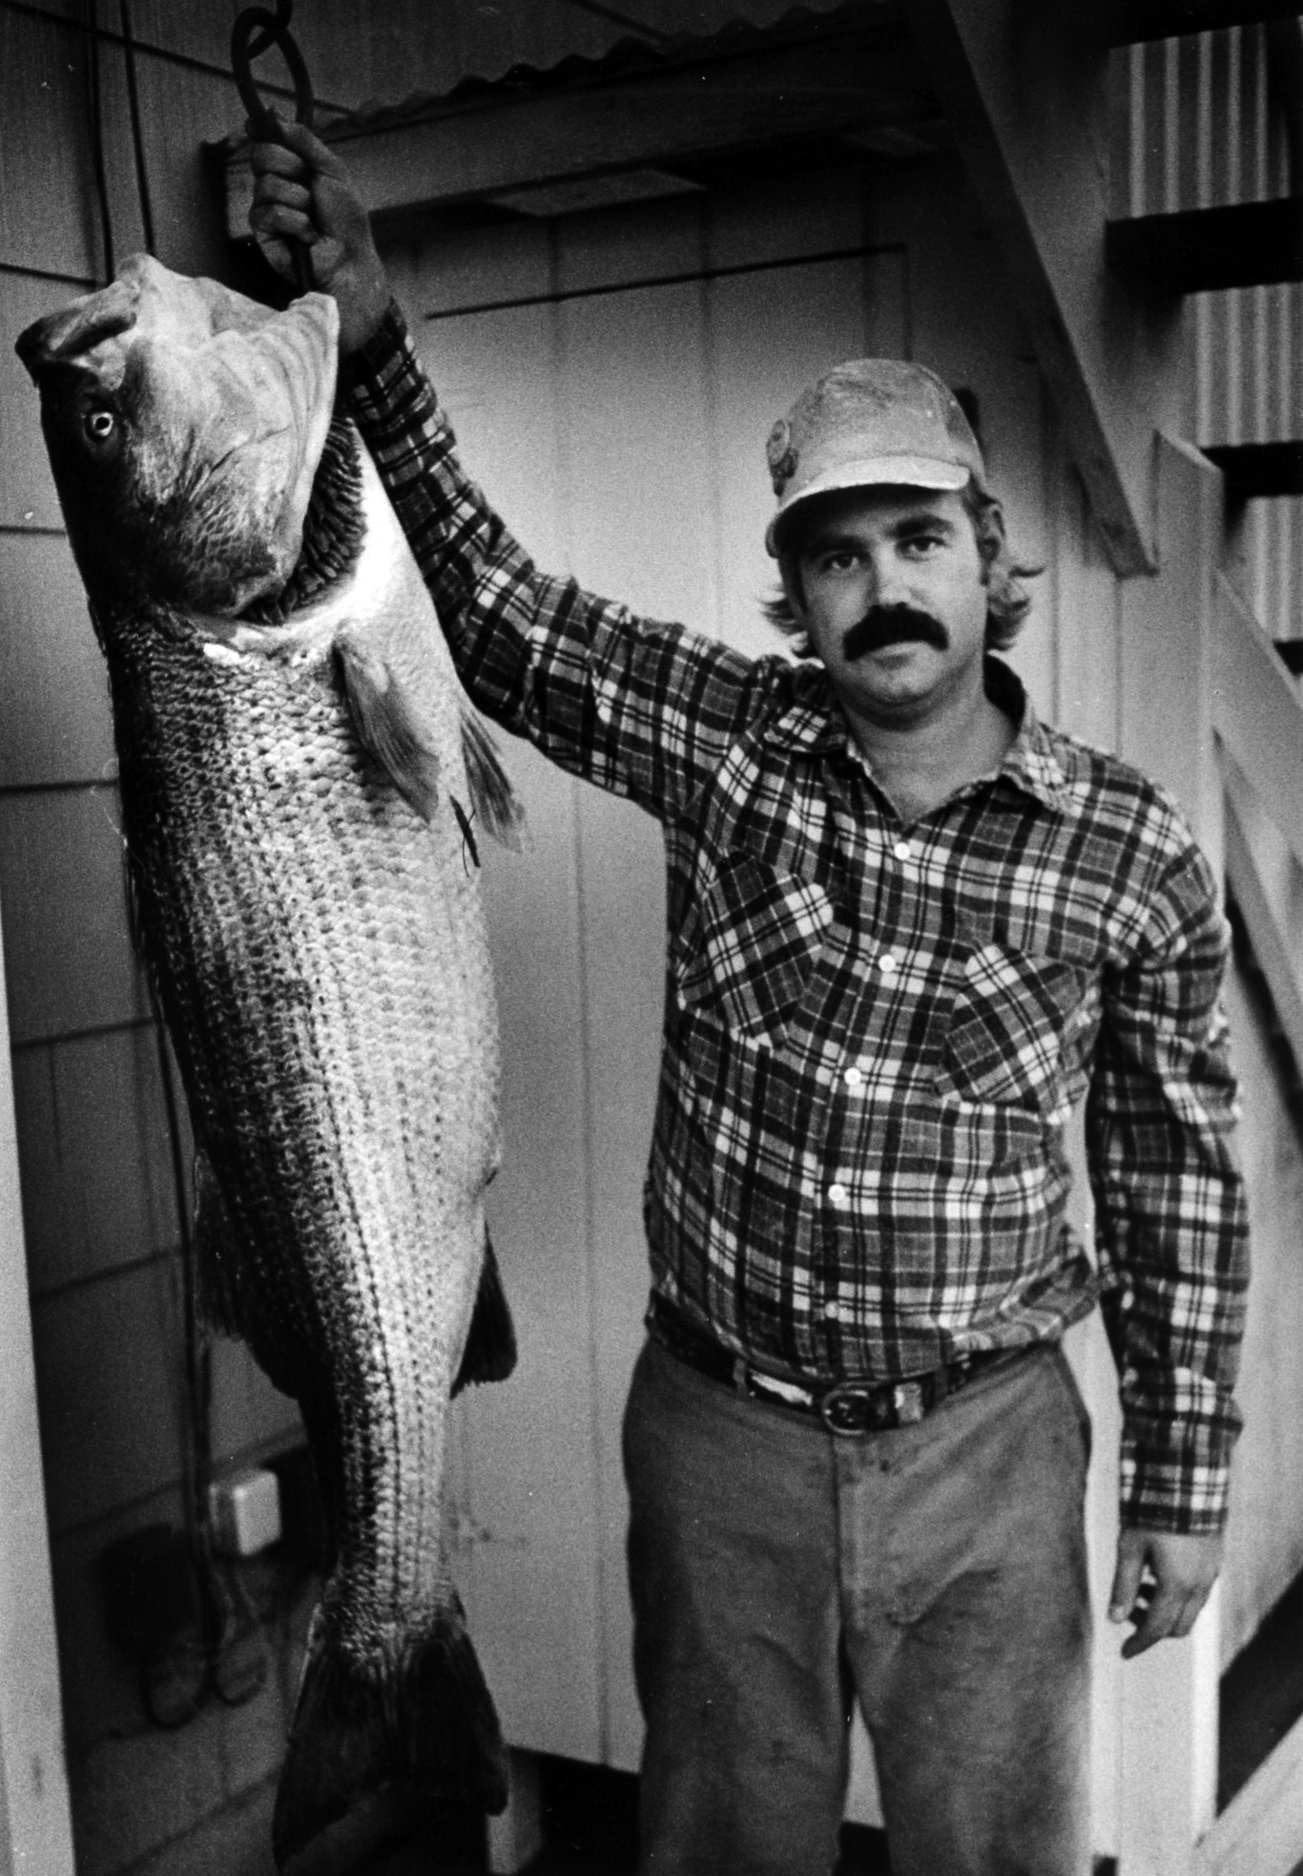 David-Dodds-59pound-bass.jpg